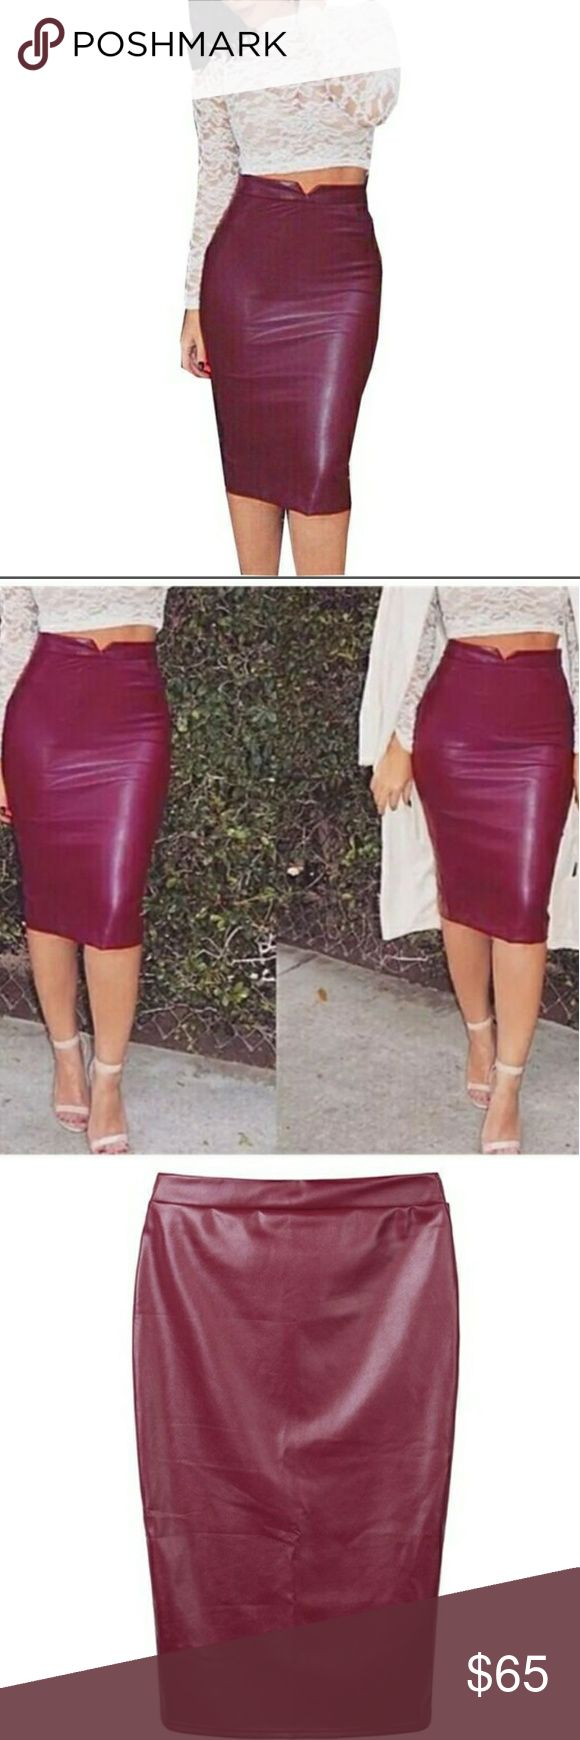 🔥JUST IN🔥Burgundy vegan leather skirt Hugs your curves just right!!  Coffee colored vegan leather skirt , has a high waist. No zipper. Lining last pic Has a ton of stretch.    Has pencil skirt shaping to it. Fits like a glove!  AND I HAVE HIPS!  :)  (Have a size XL for myself. Normally wear size 12 &14 depending on material)  Very true to size! Approx. Measurements: pls keep in mind the skirt has a lot of give. Get size up if you do not want it snug S -24w 30h 26 1/2L M-26w  32h 27L L-26…